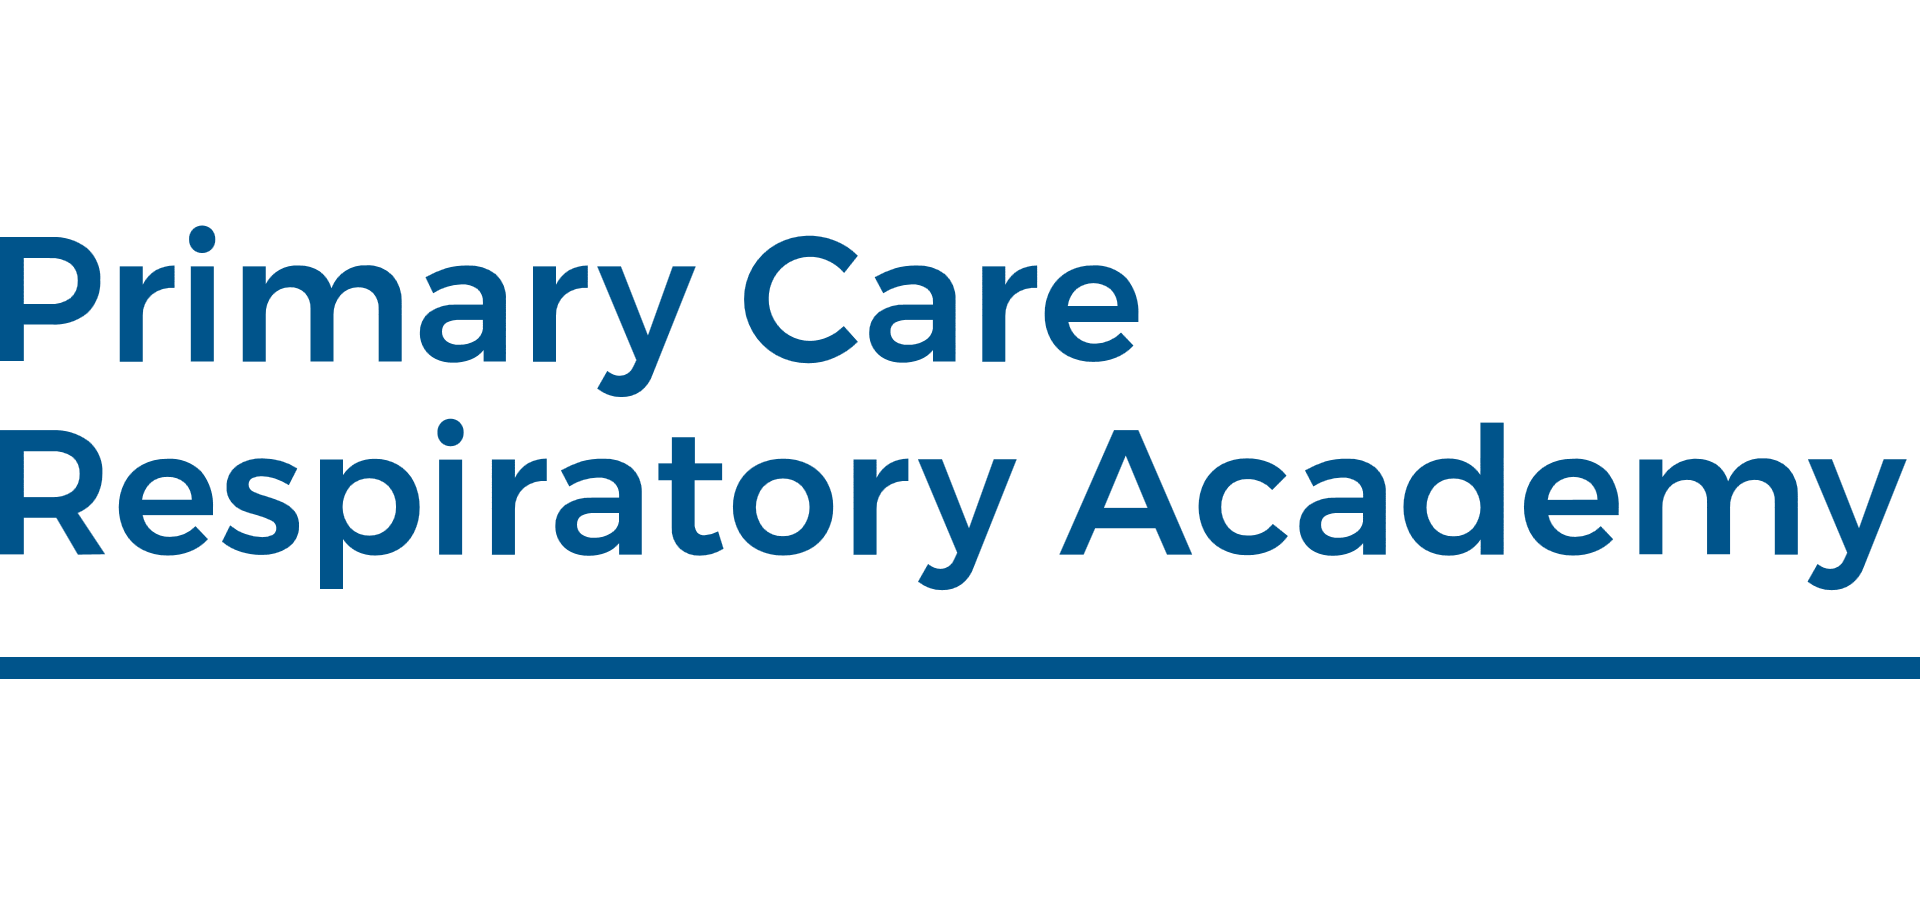 Primary Care Respiratory Acadamey